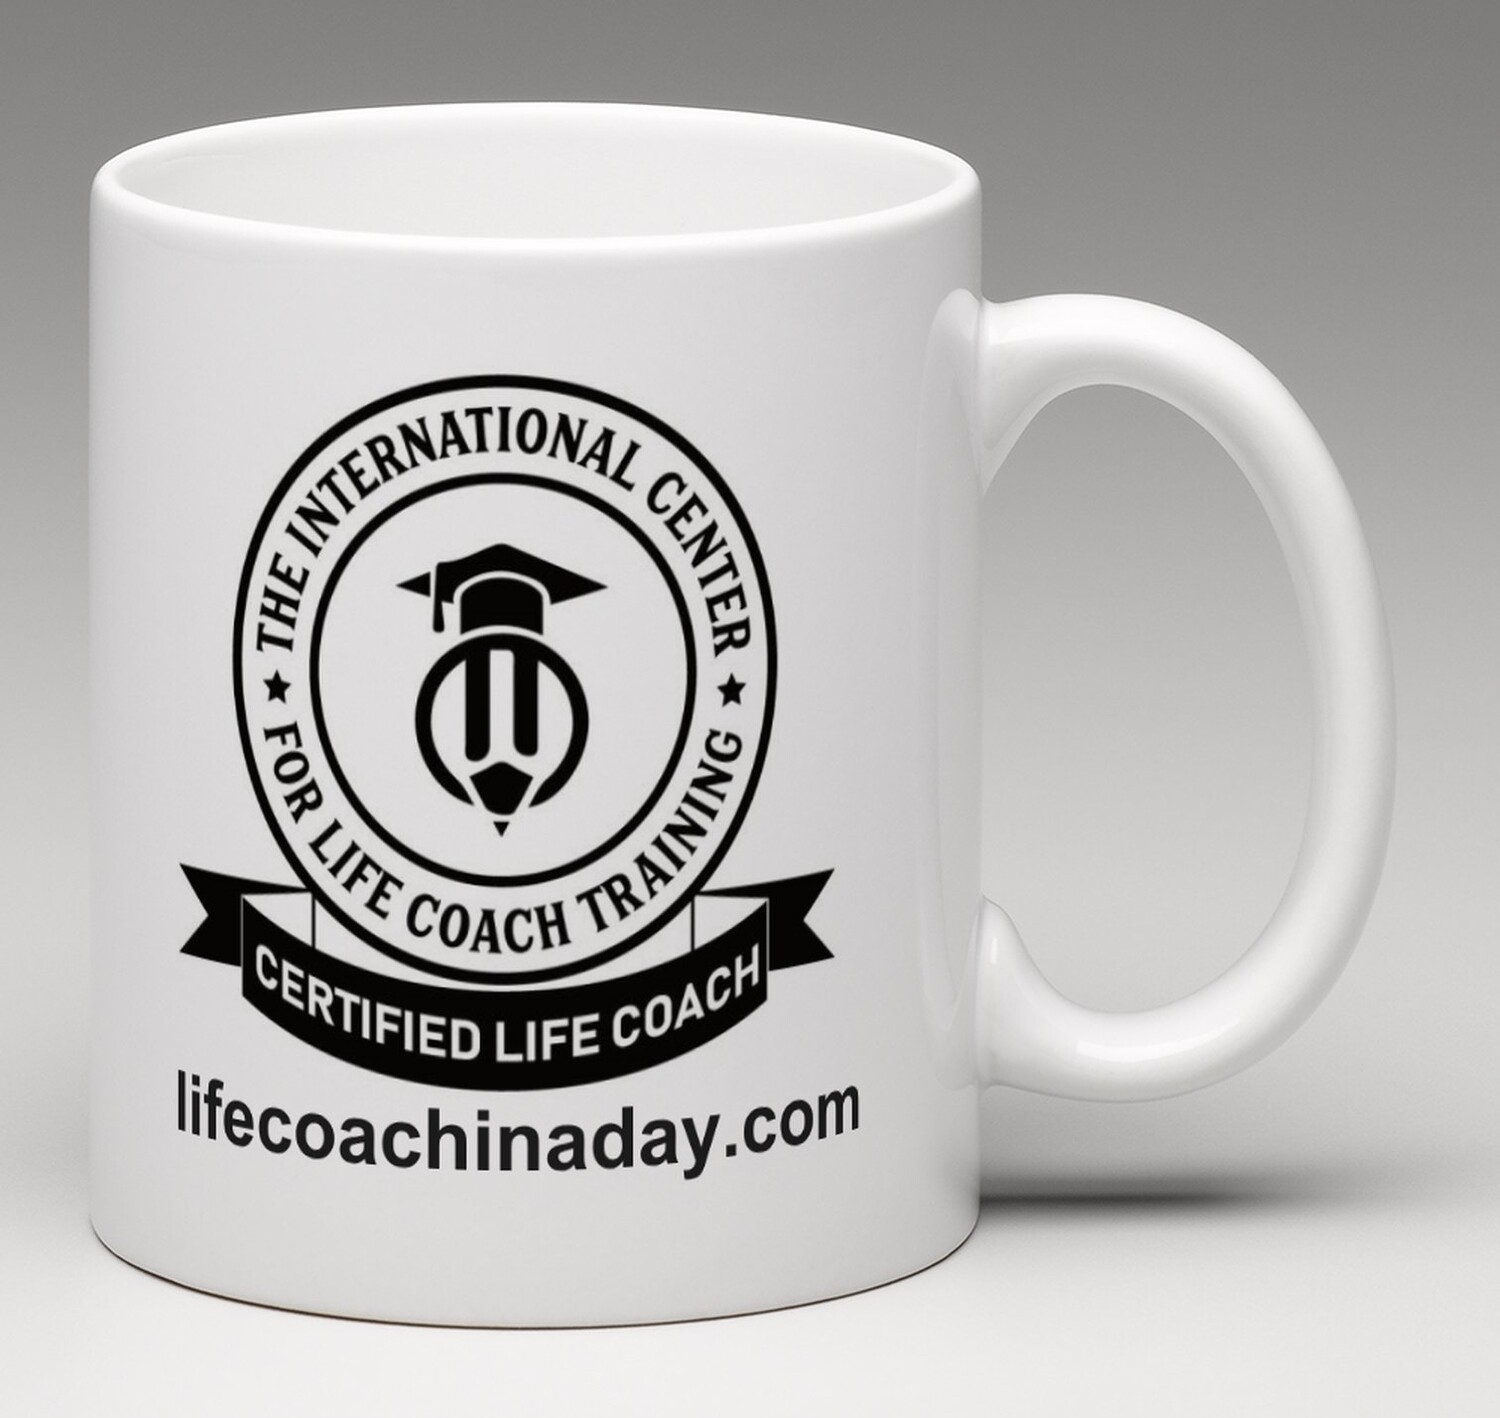 The 'Certified Life Coach' [Life Coach In a Day]  Coffee Mug